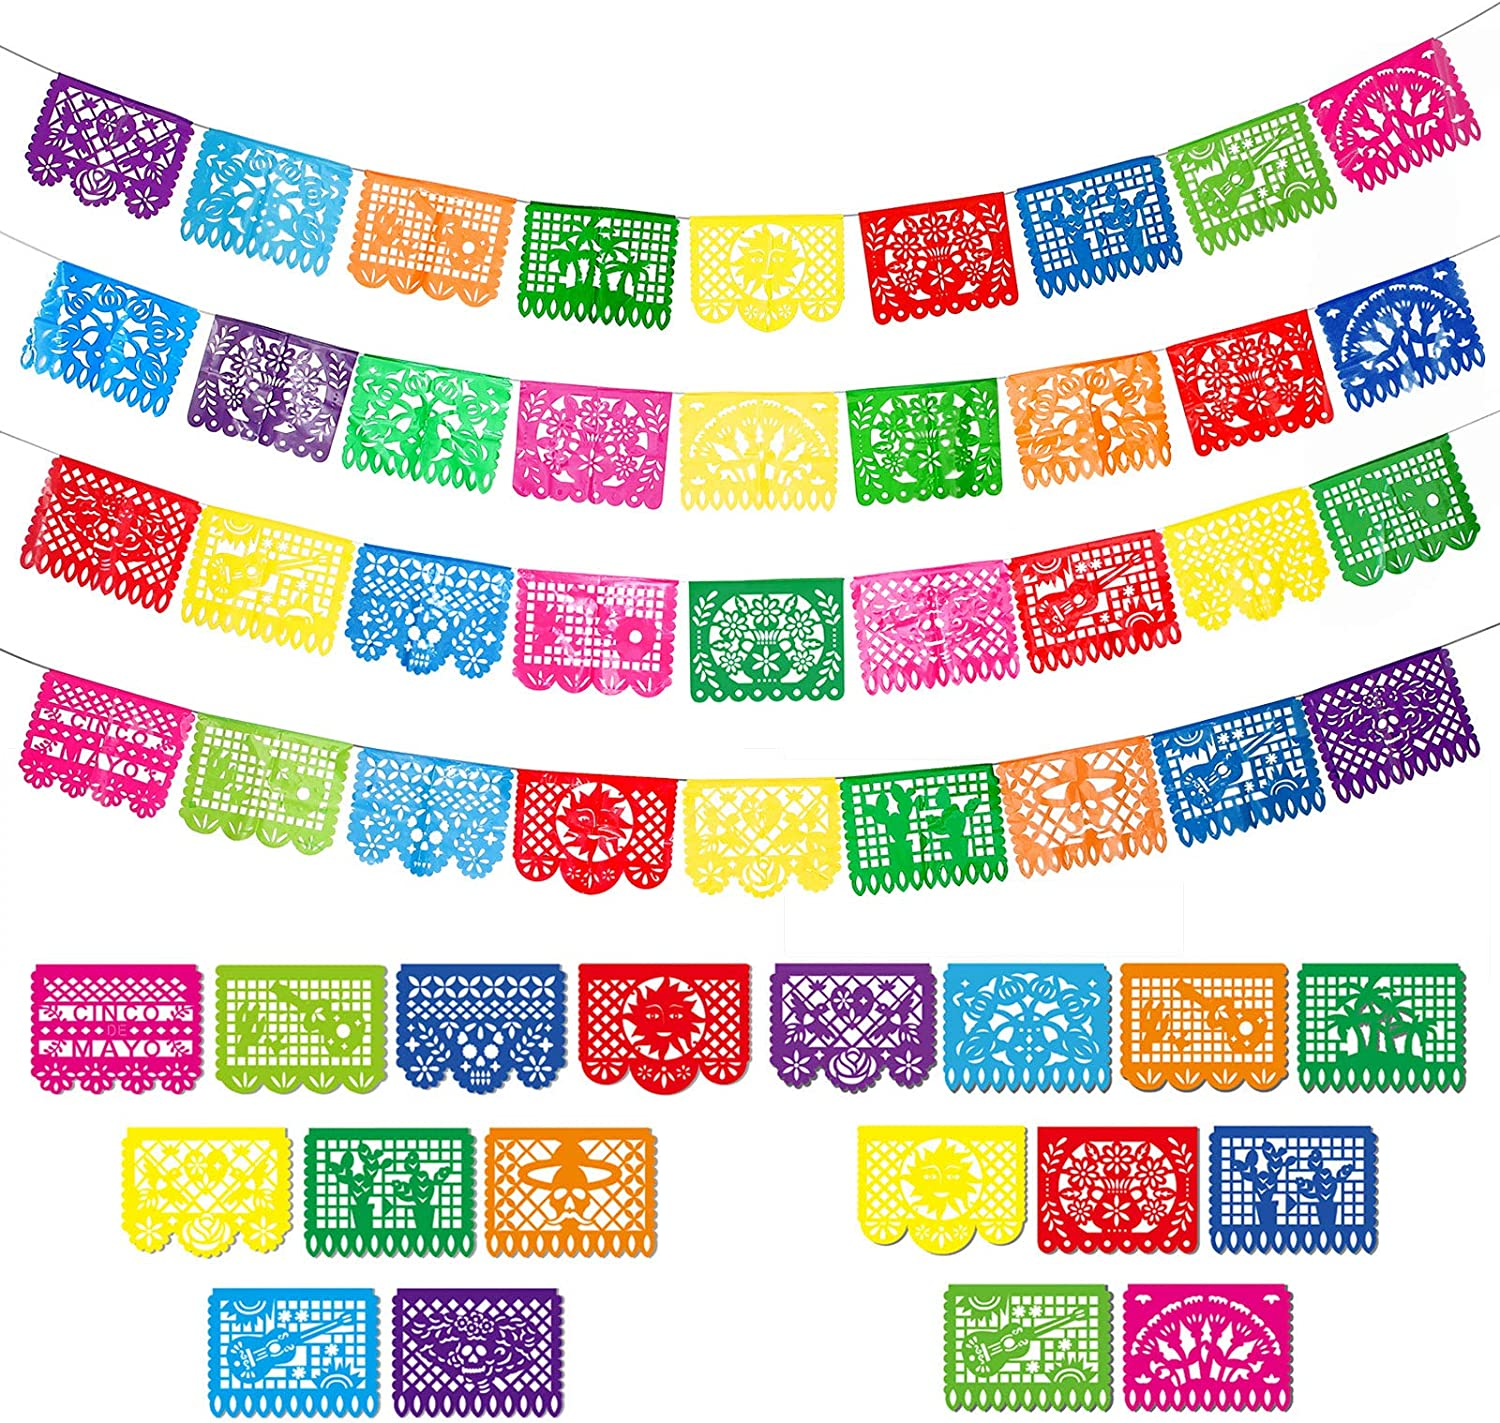 4 Packs Mexican Party Banners Large Plastic Papel Picado Banner Fiesta Plastic Banners, 4 Different Designs, 60 Feet Long Totally